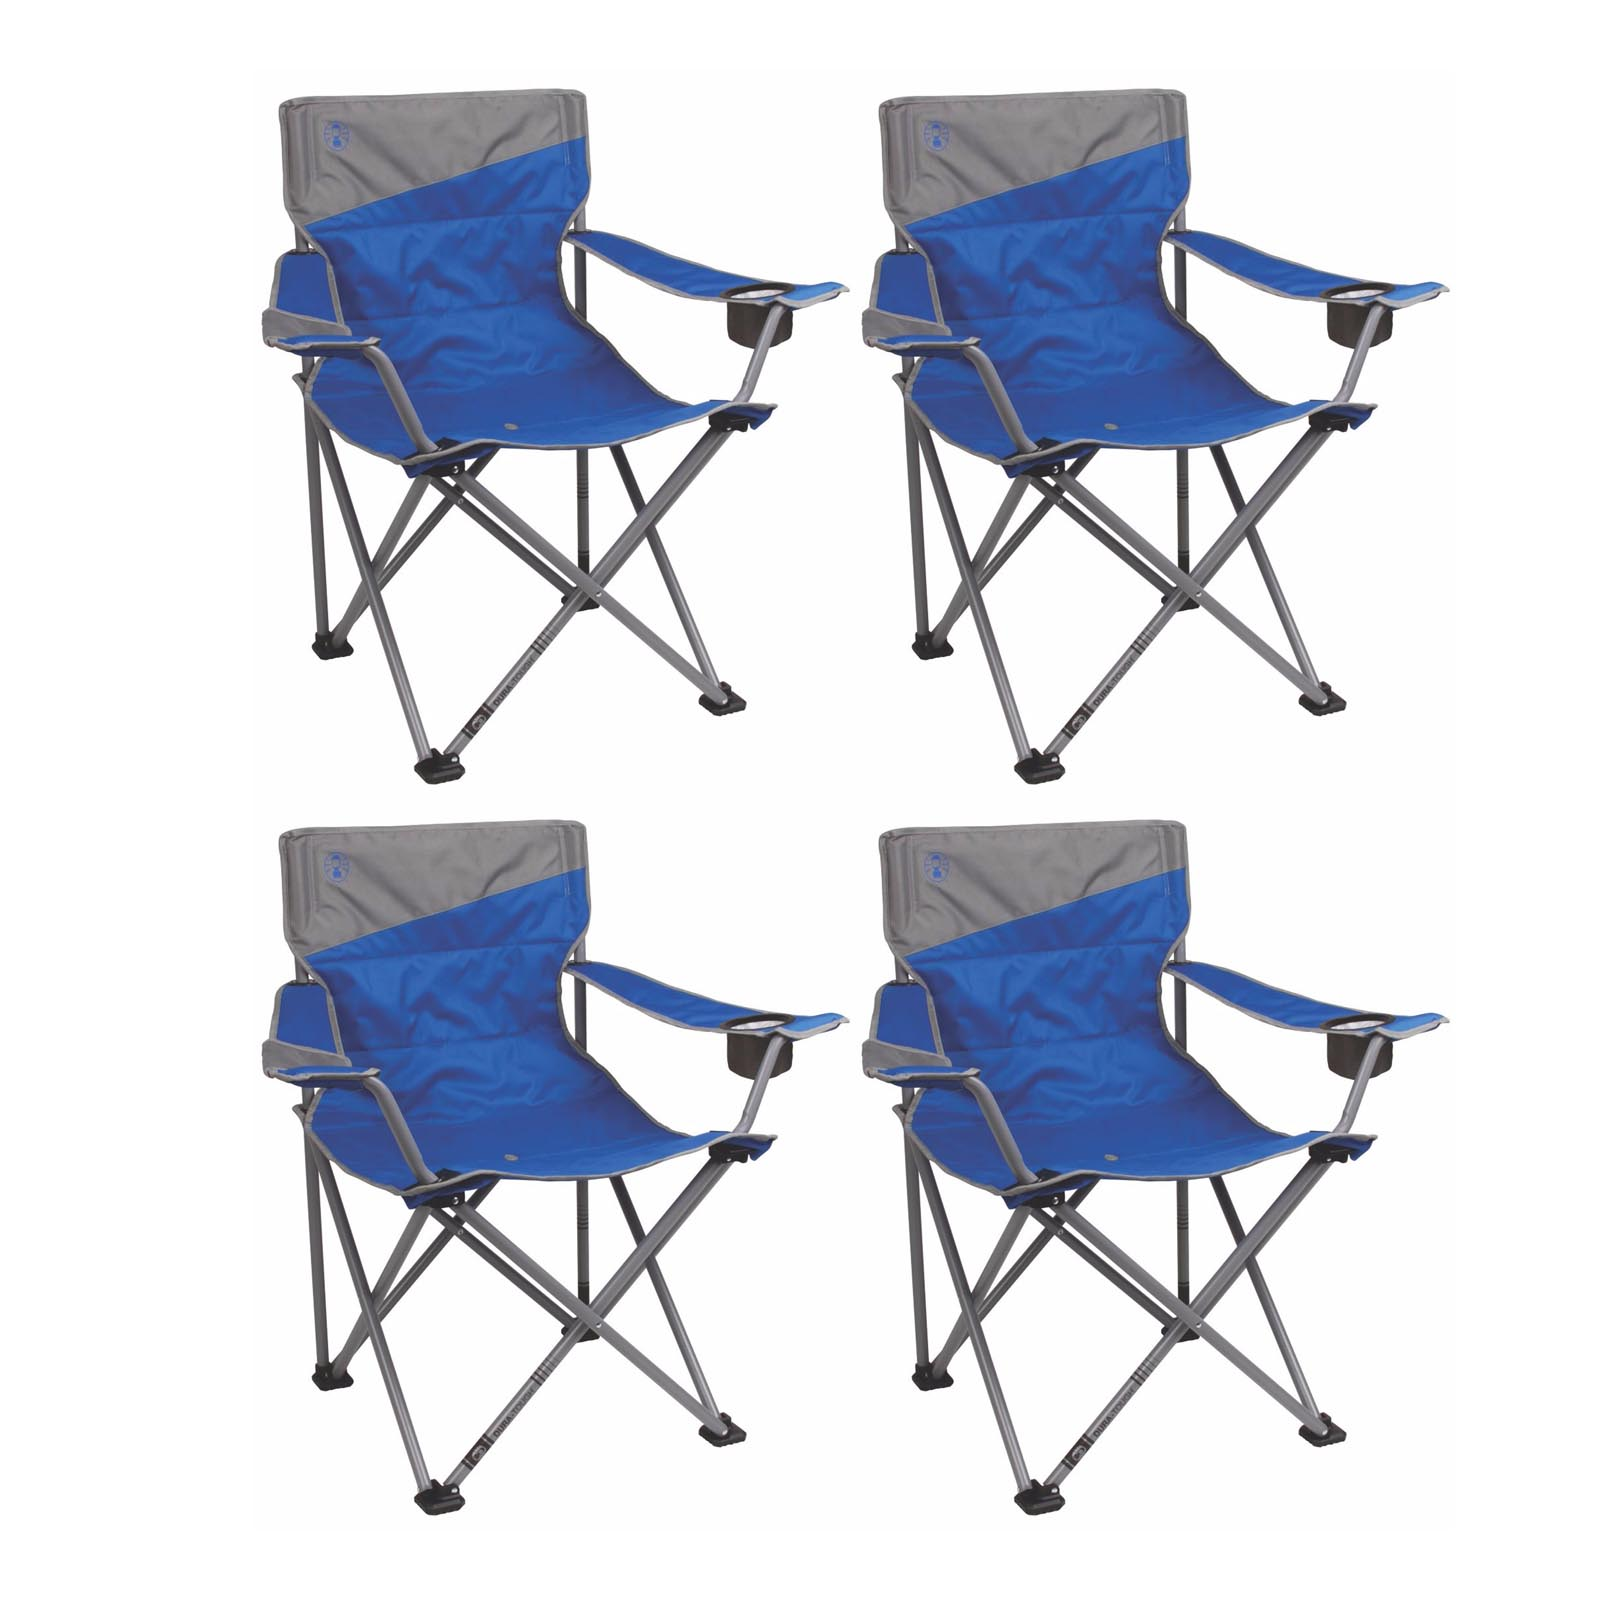 4) Coleman Camping Outdoor Beach Folding Big-N-Tall Oversized Quad Chairs, Blue